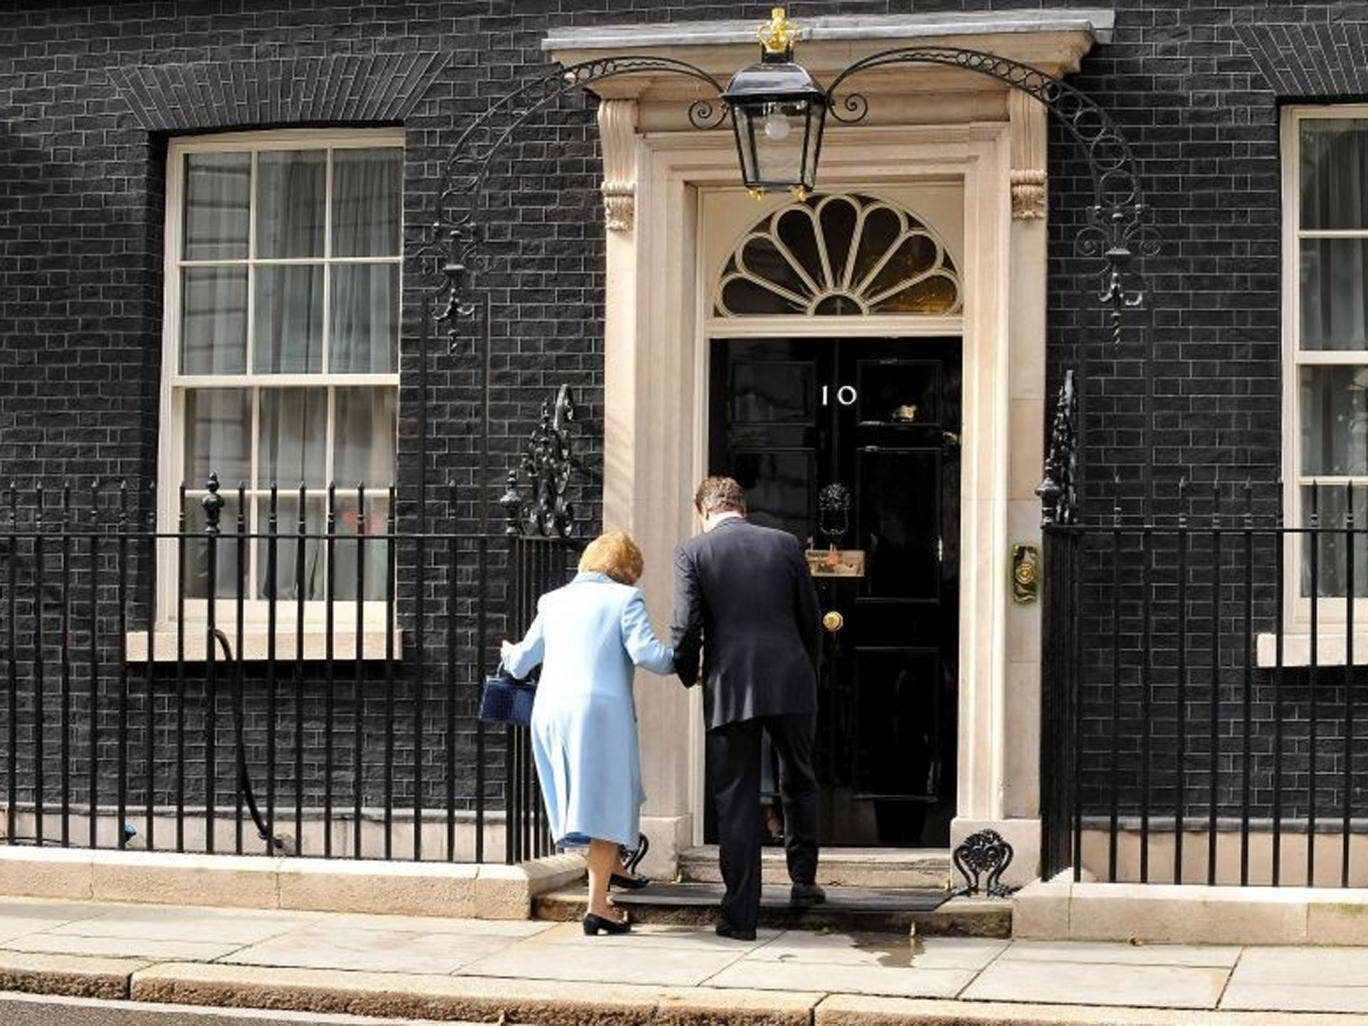 June 2010: Prime Minister David Cameron helps Baroness Thatcher into 10 Downing Street